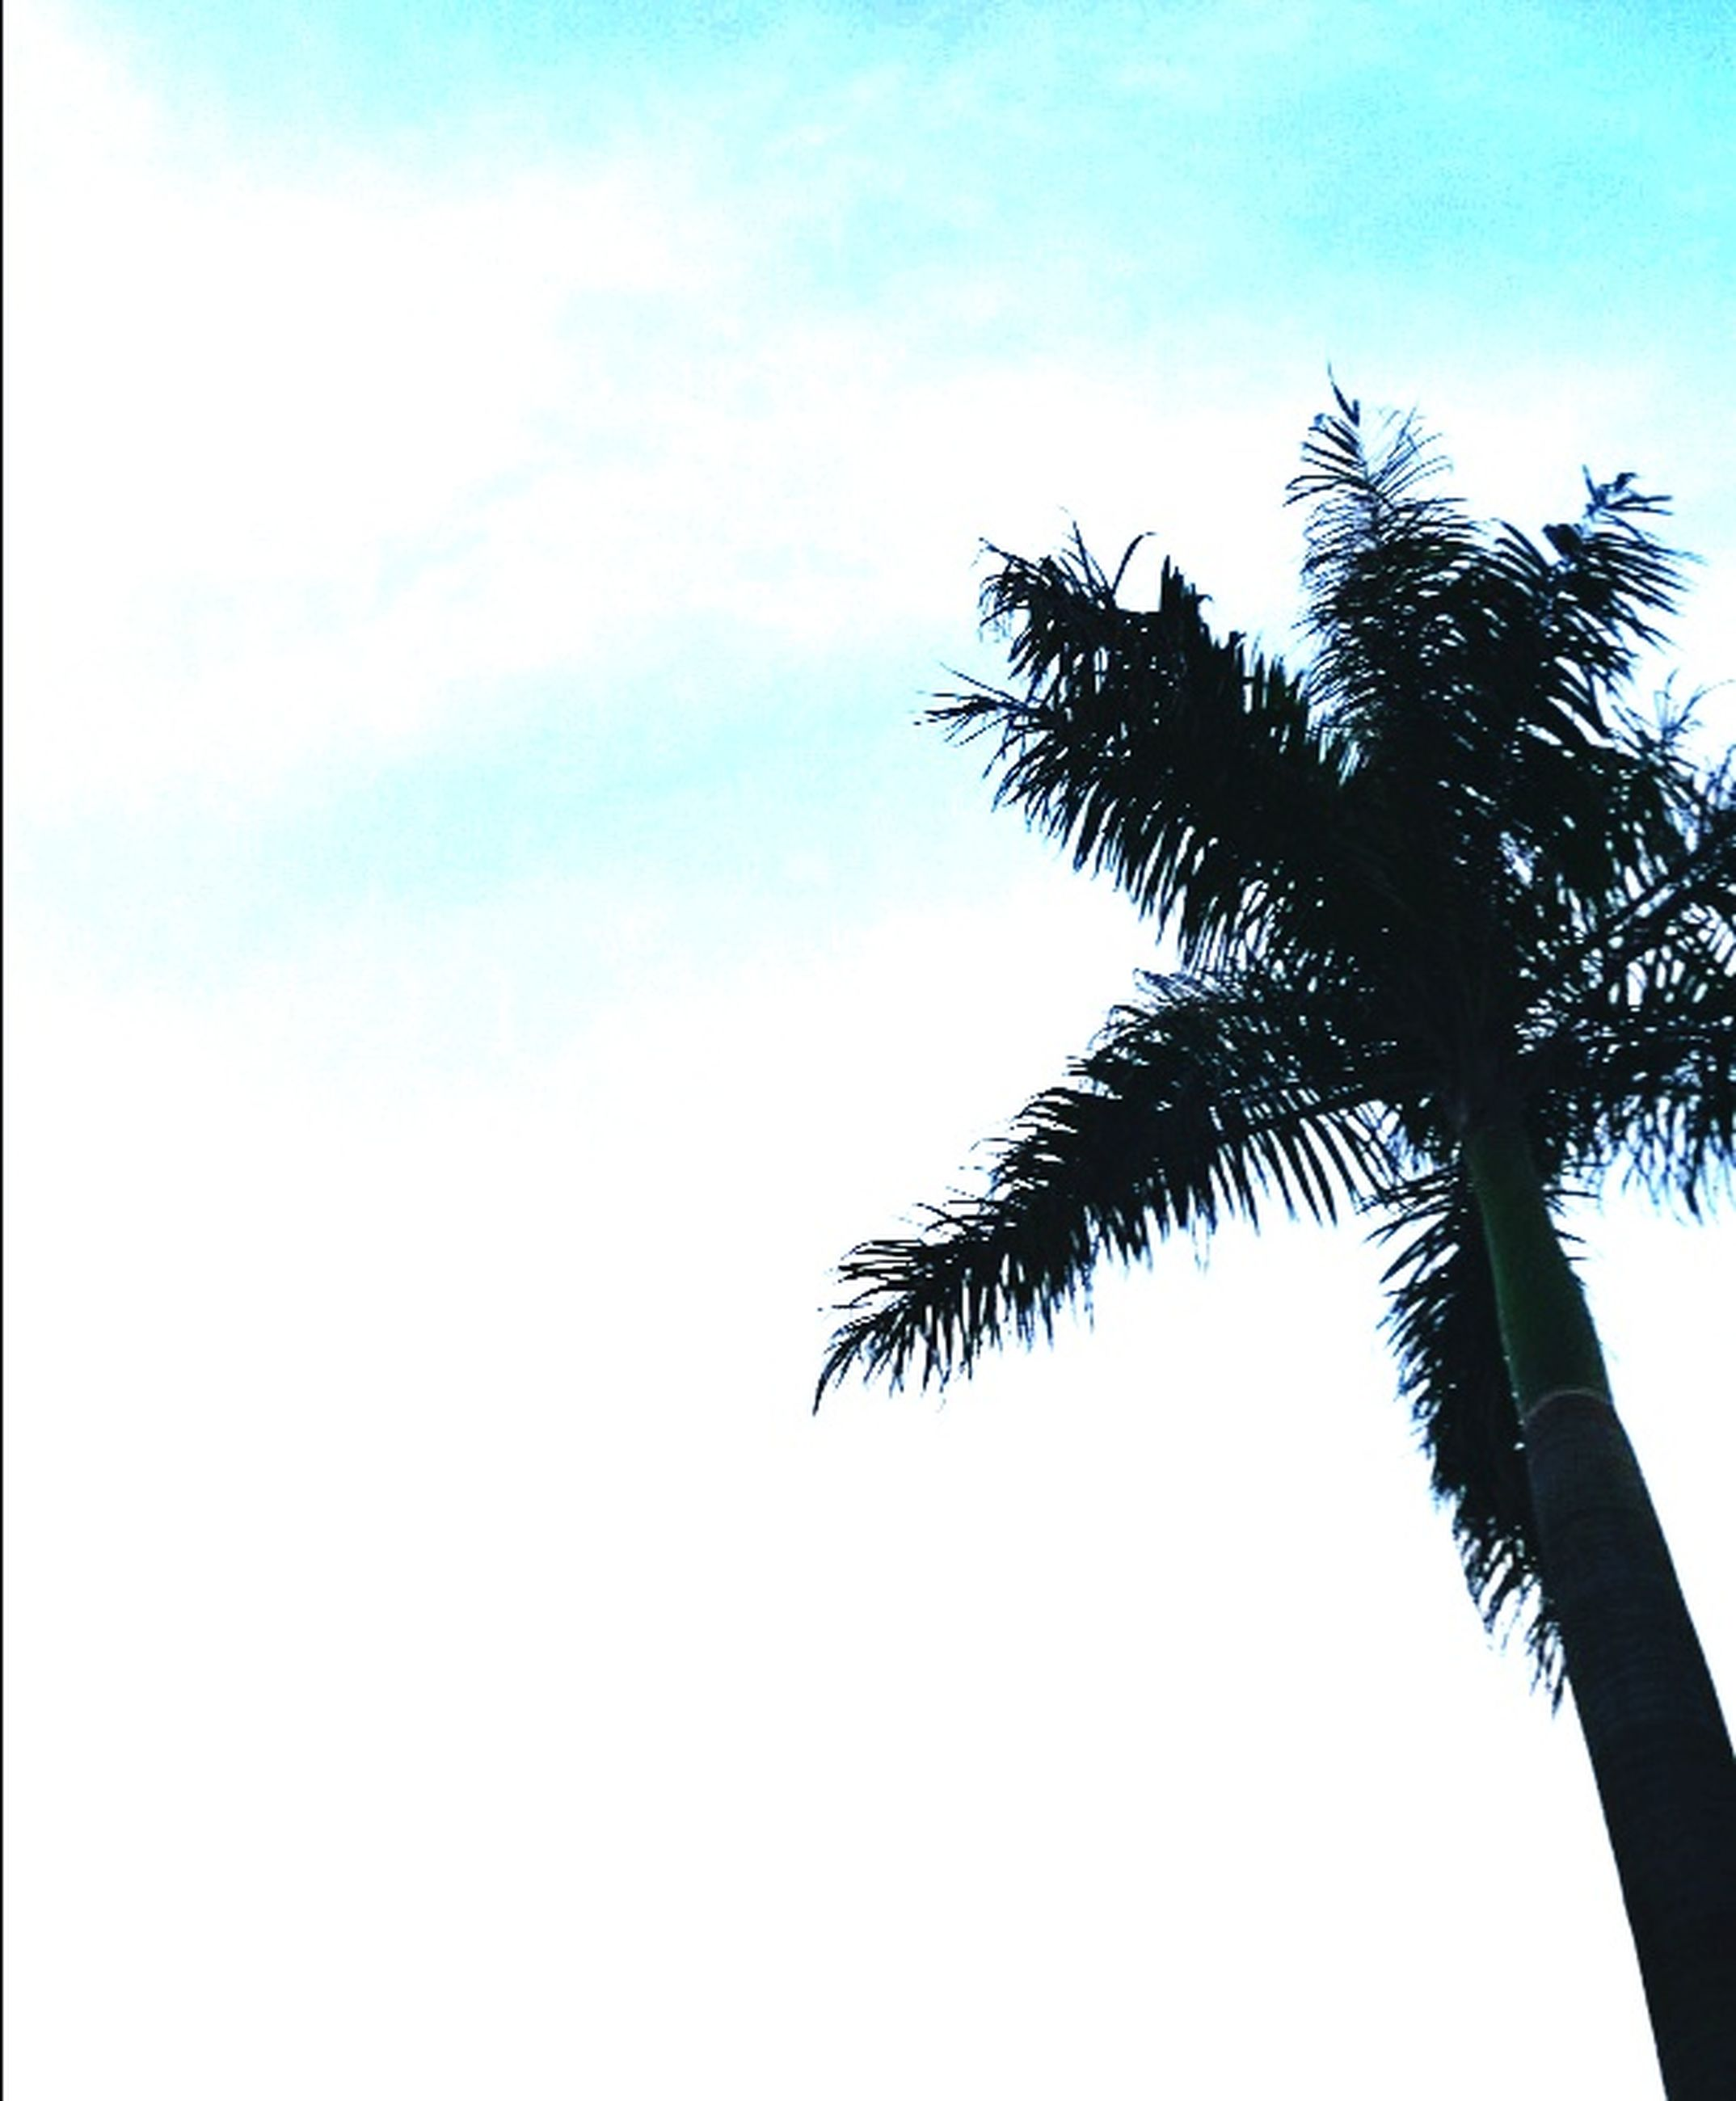 palm tree, tree, low angle view, tree trunk, nature, sky, beauty in nature, no people, growth, silhouette, day, outdoors, scenics, branch